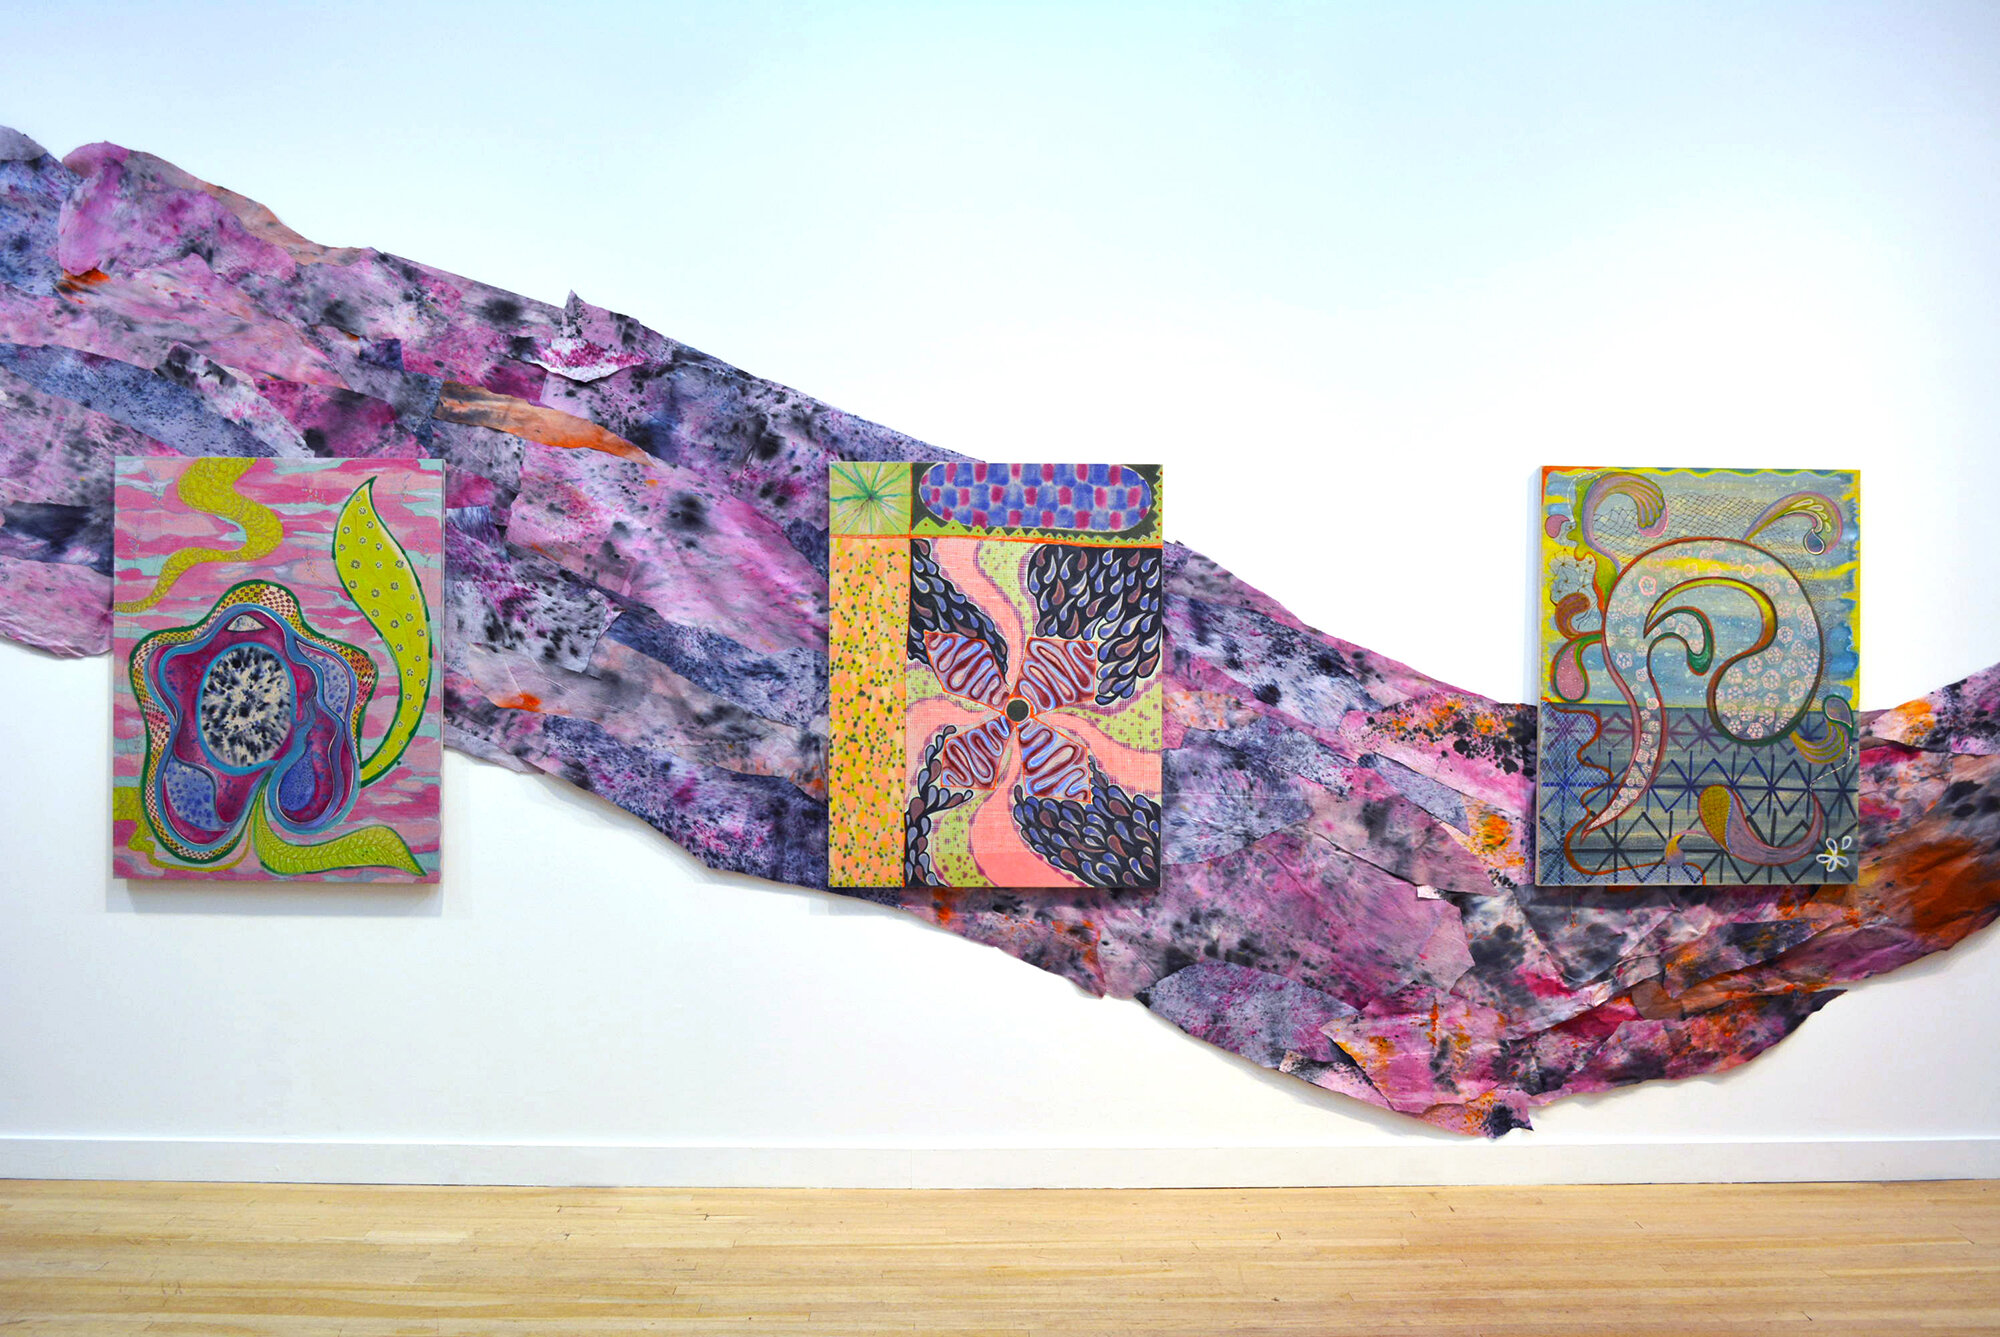 Installation view of Natessa Amin:  Hyphen .  [Image description: Installation view of three colorful patterned paintings, 36 by 46 inches each, hanging on top of purple, orange, pink, and blue hand-dyed and layered newsprint snaking across the wall of the gallery.]